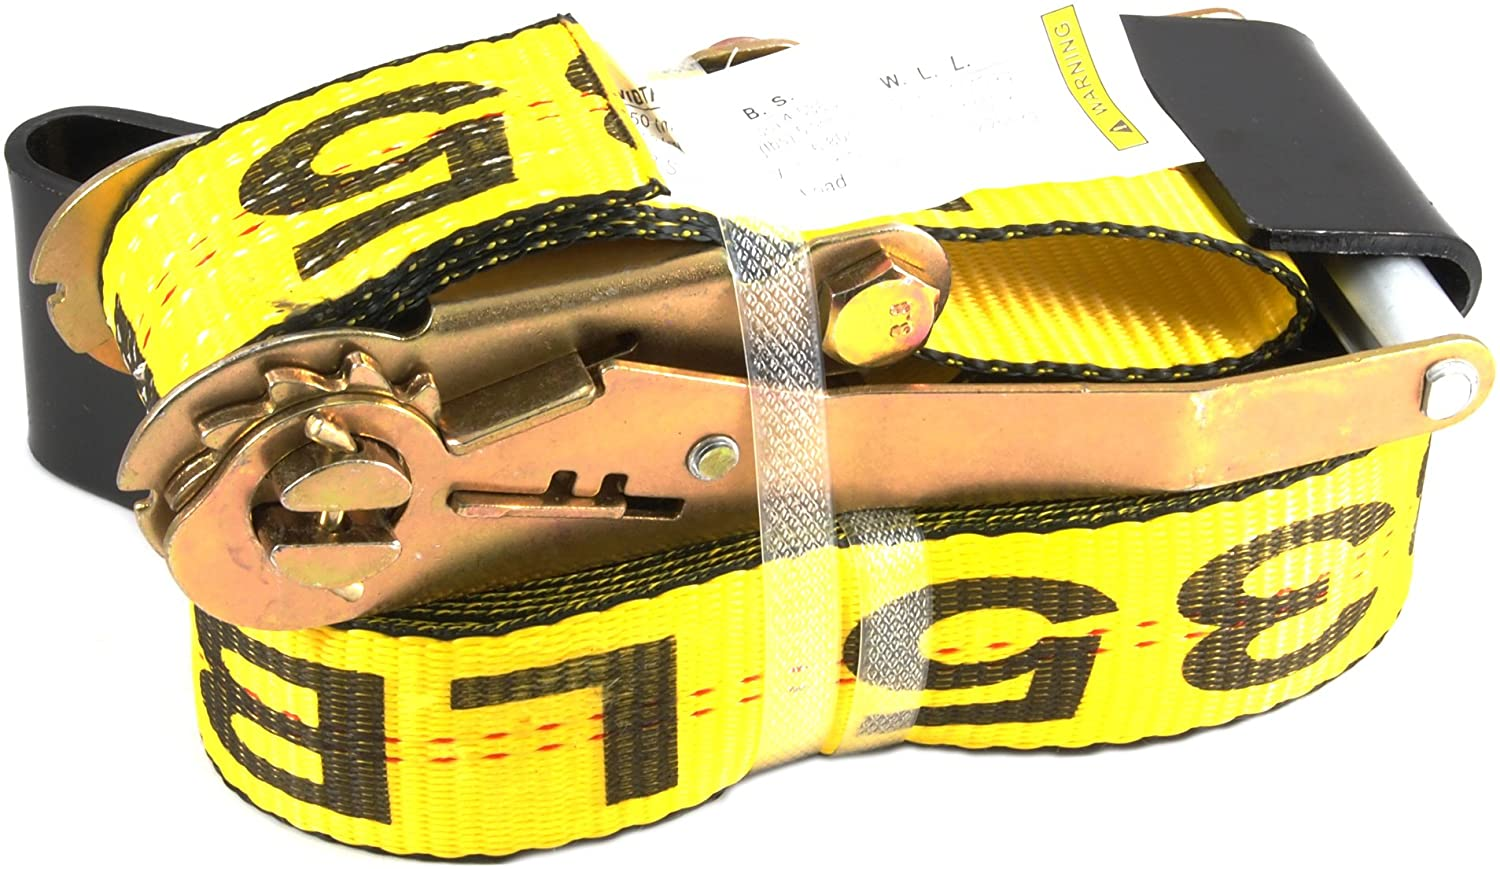 Forney 70460 Ratchet Tie Down Strap with Flat Hooks, 2-Inch-by-27-Feet, Yellow